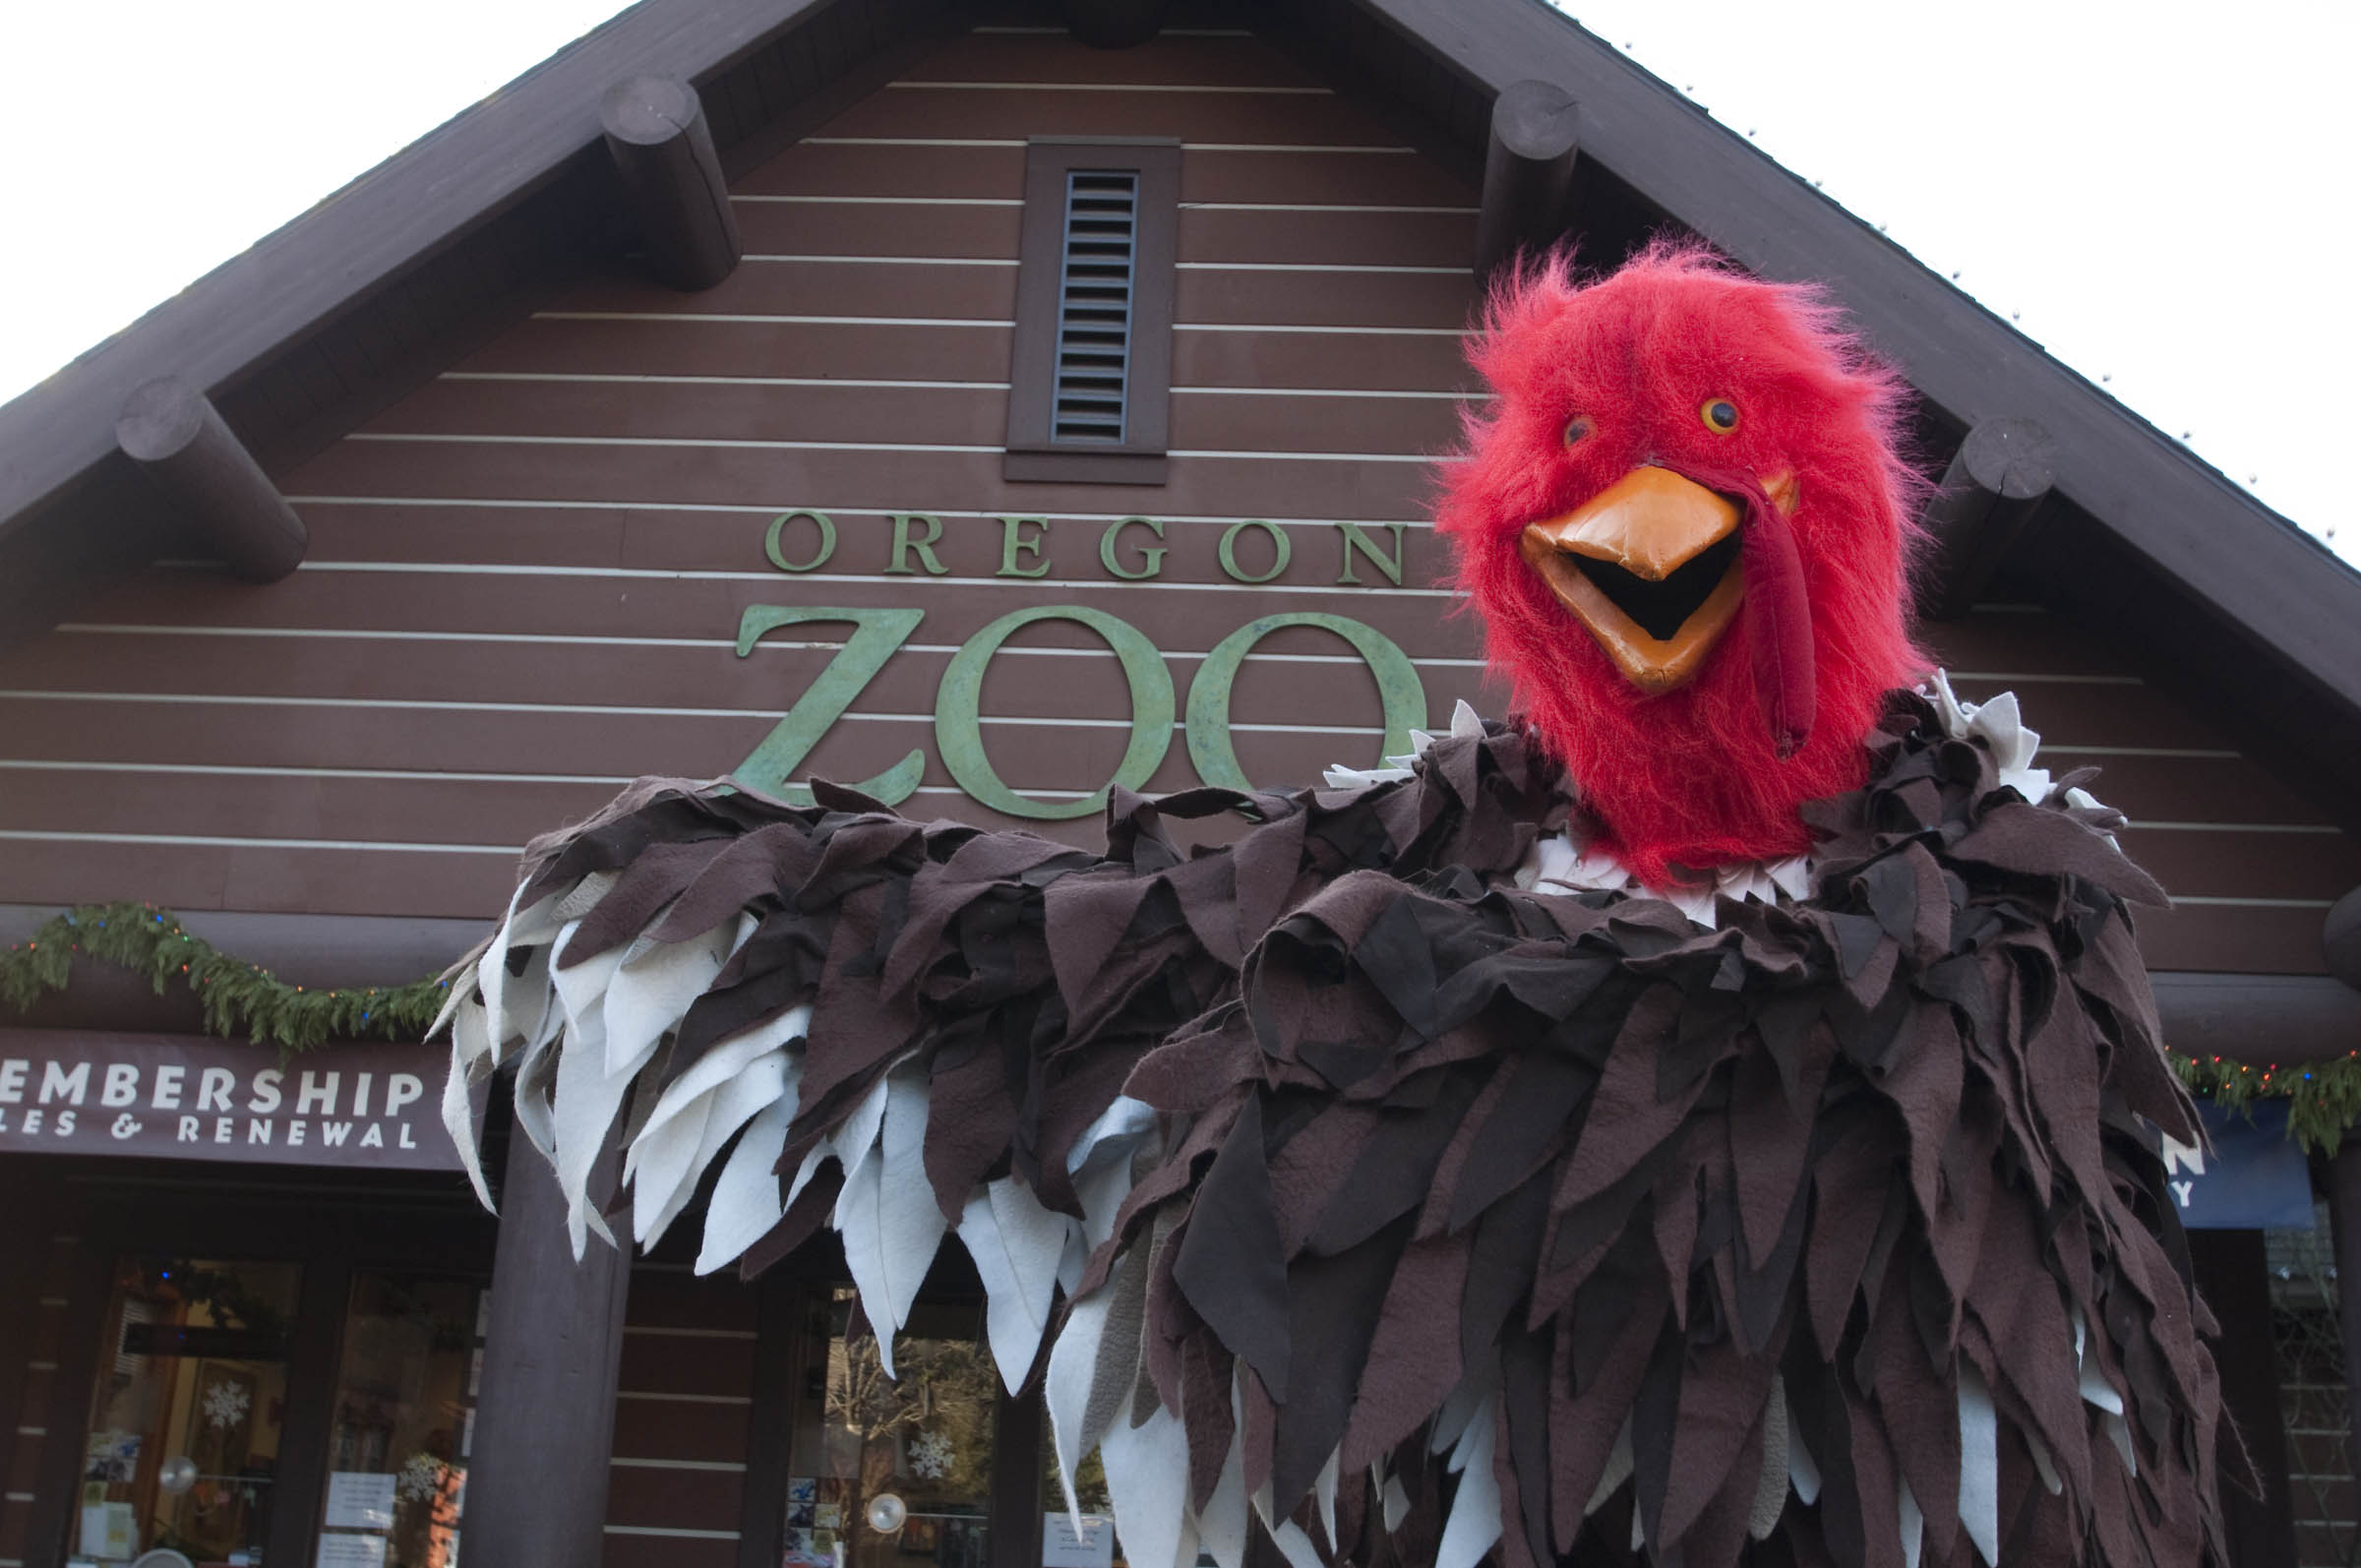 A costumed turkey mascot limbers up outside the Oregon Zoo in preparation for the traditional Thanksgiving Day Turkey Trot. The run-walk takes place Nov. 27 beginning at 8 a.m. at the zoo. Photo by Julie Cudahy, courtesy of the Oregon Zoo.